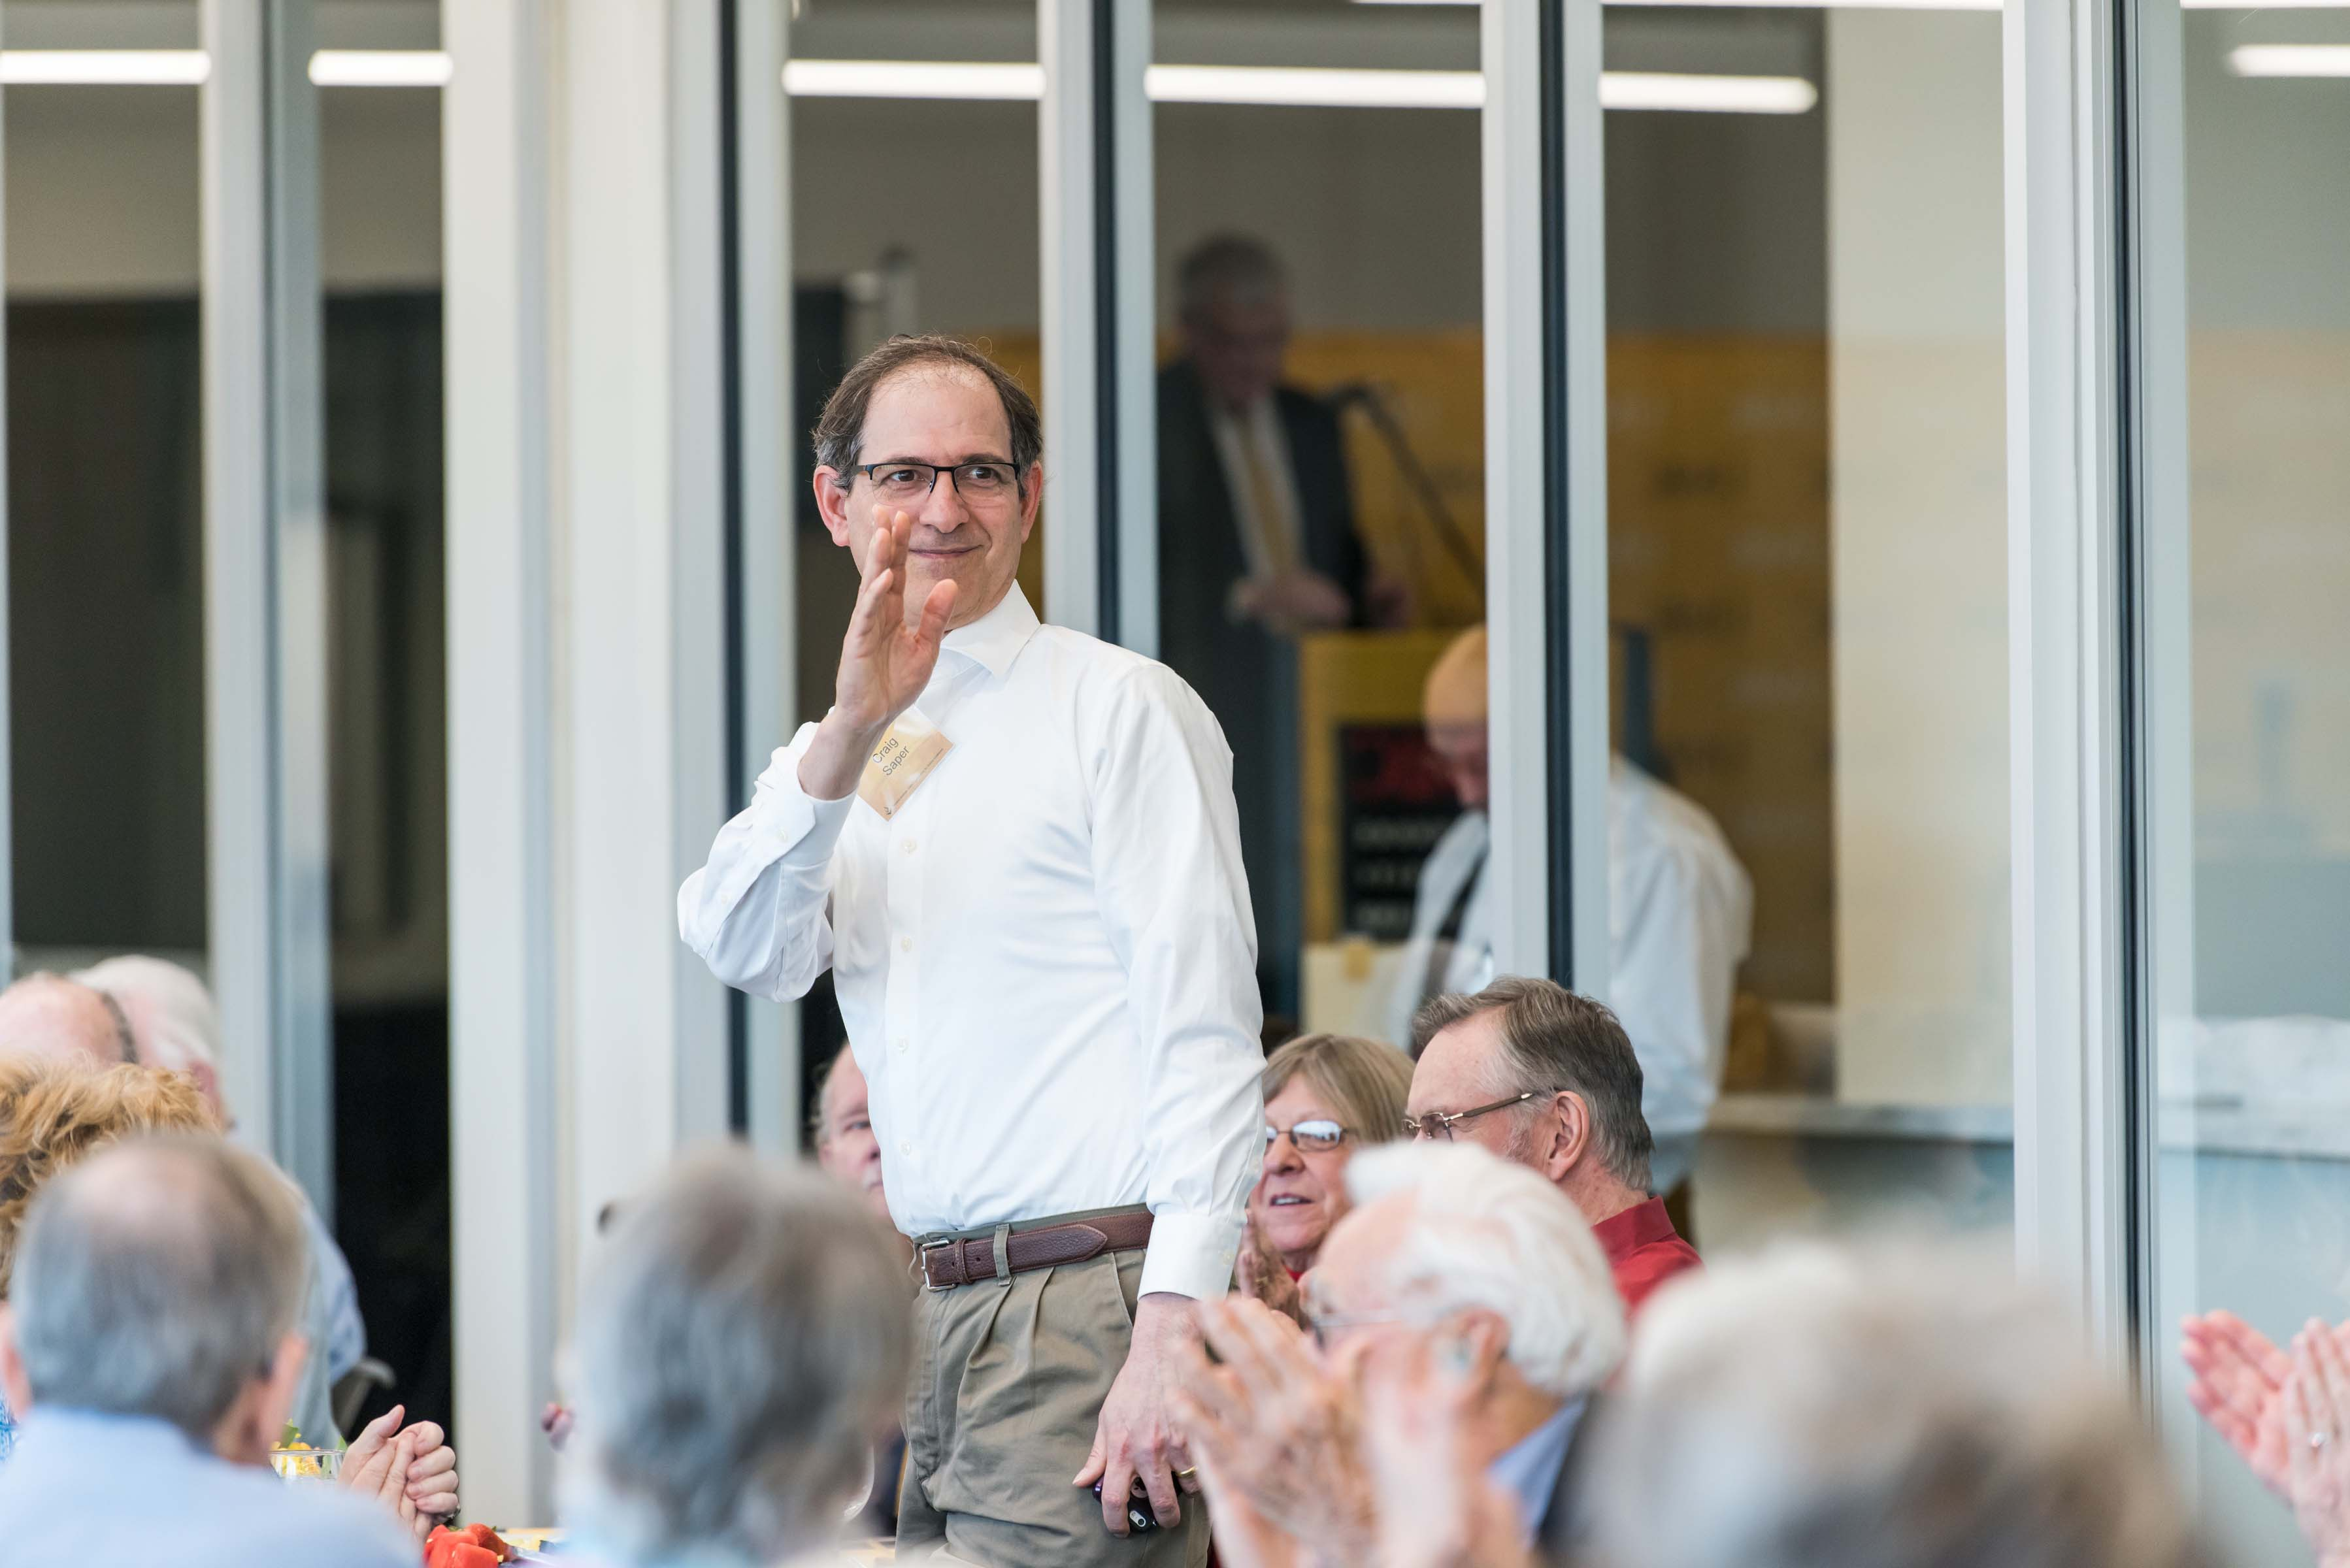 man stands up to wave at Wisdom Institute lunch